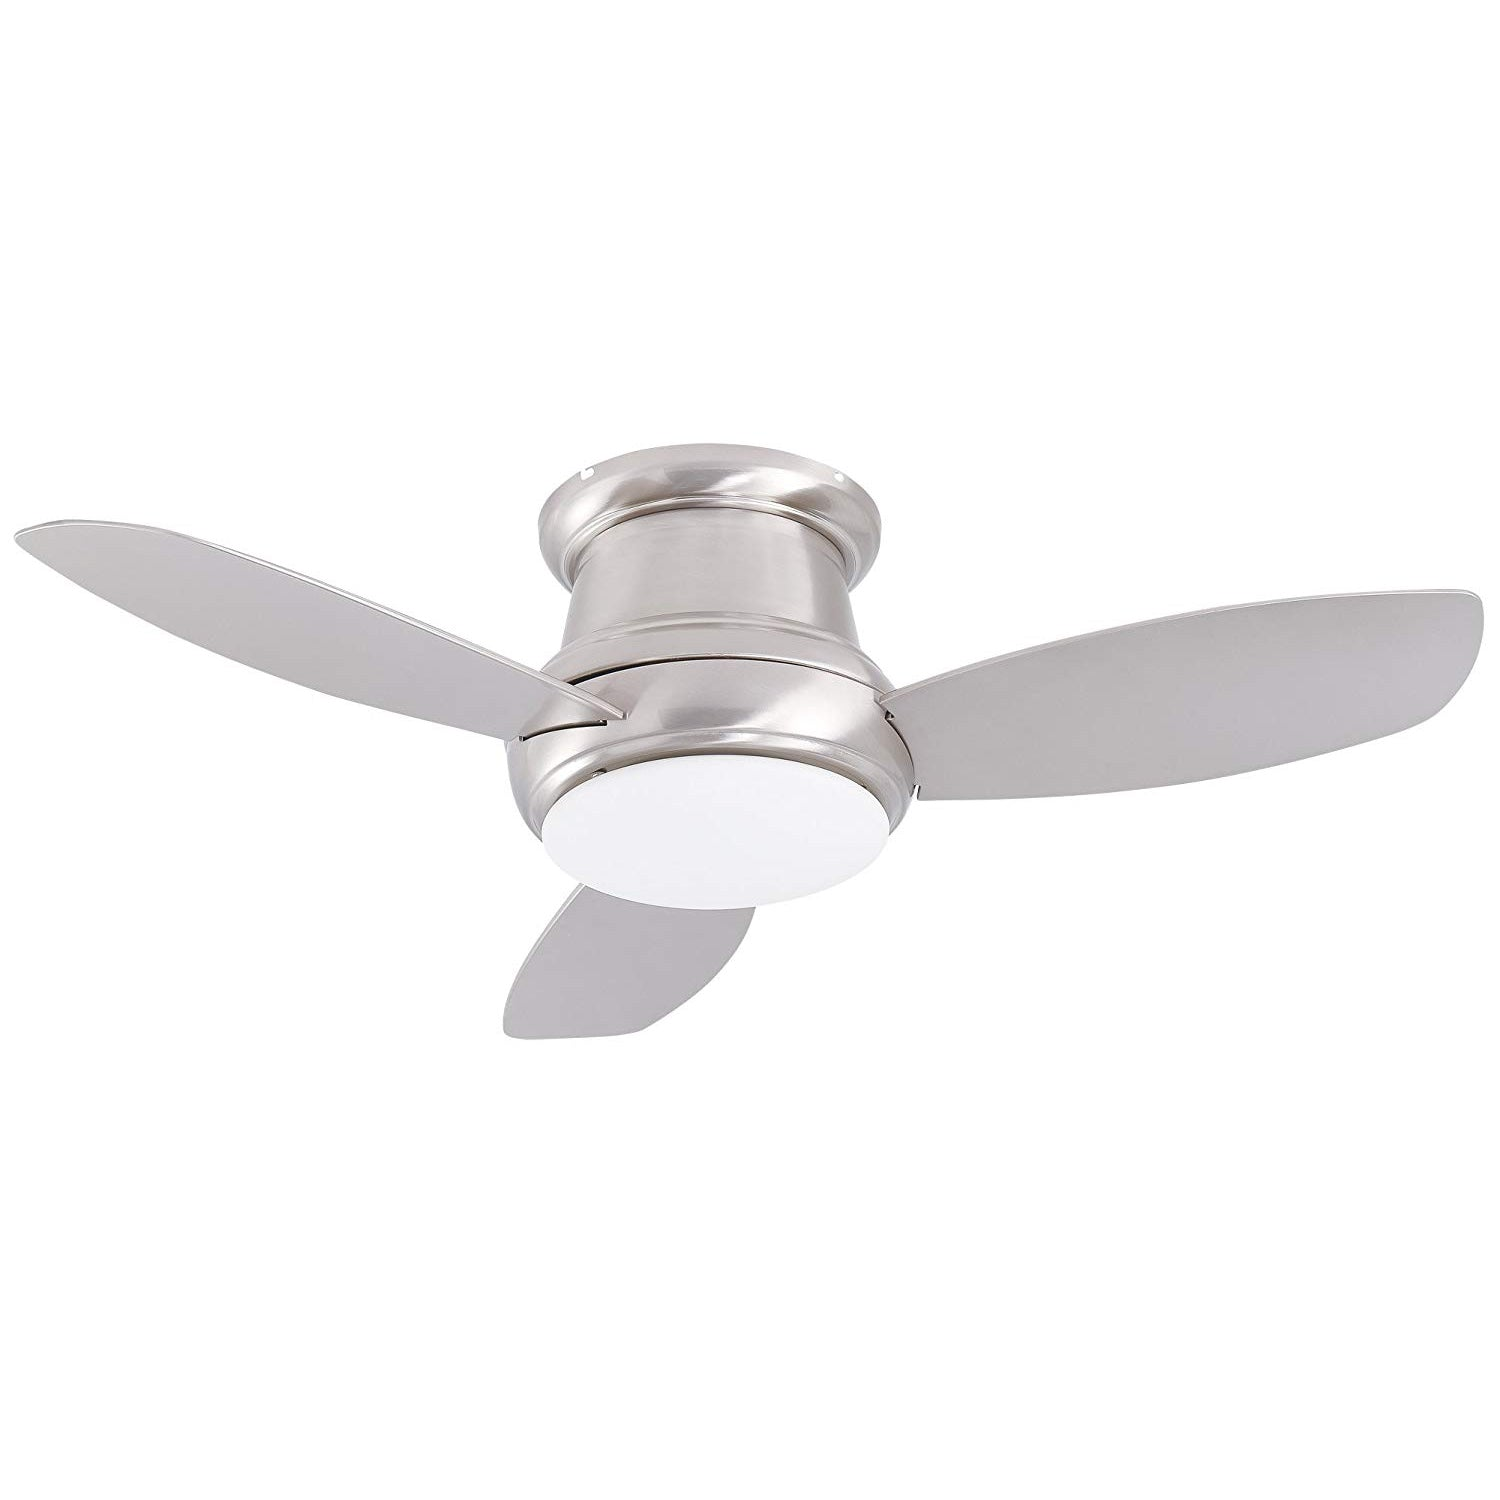 Flush Mount Ceiling Fan With Led Light 44 Quot Bn Finish 120v 62w 1050lm Cloudy Bay Lighting